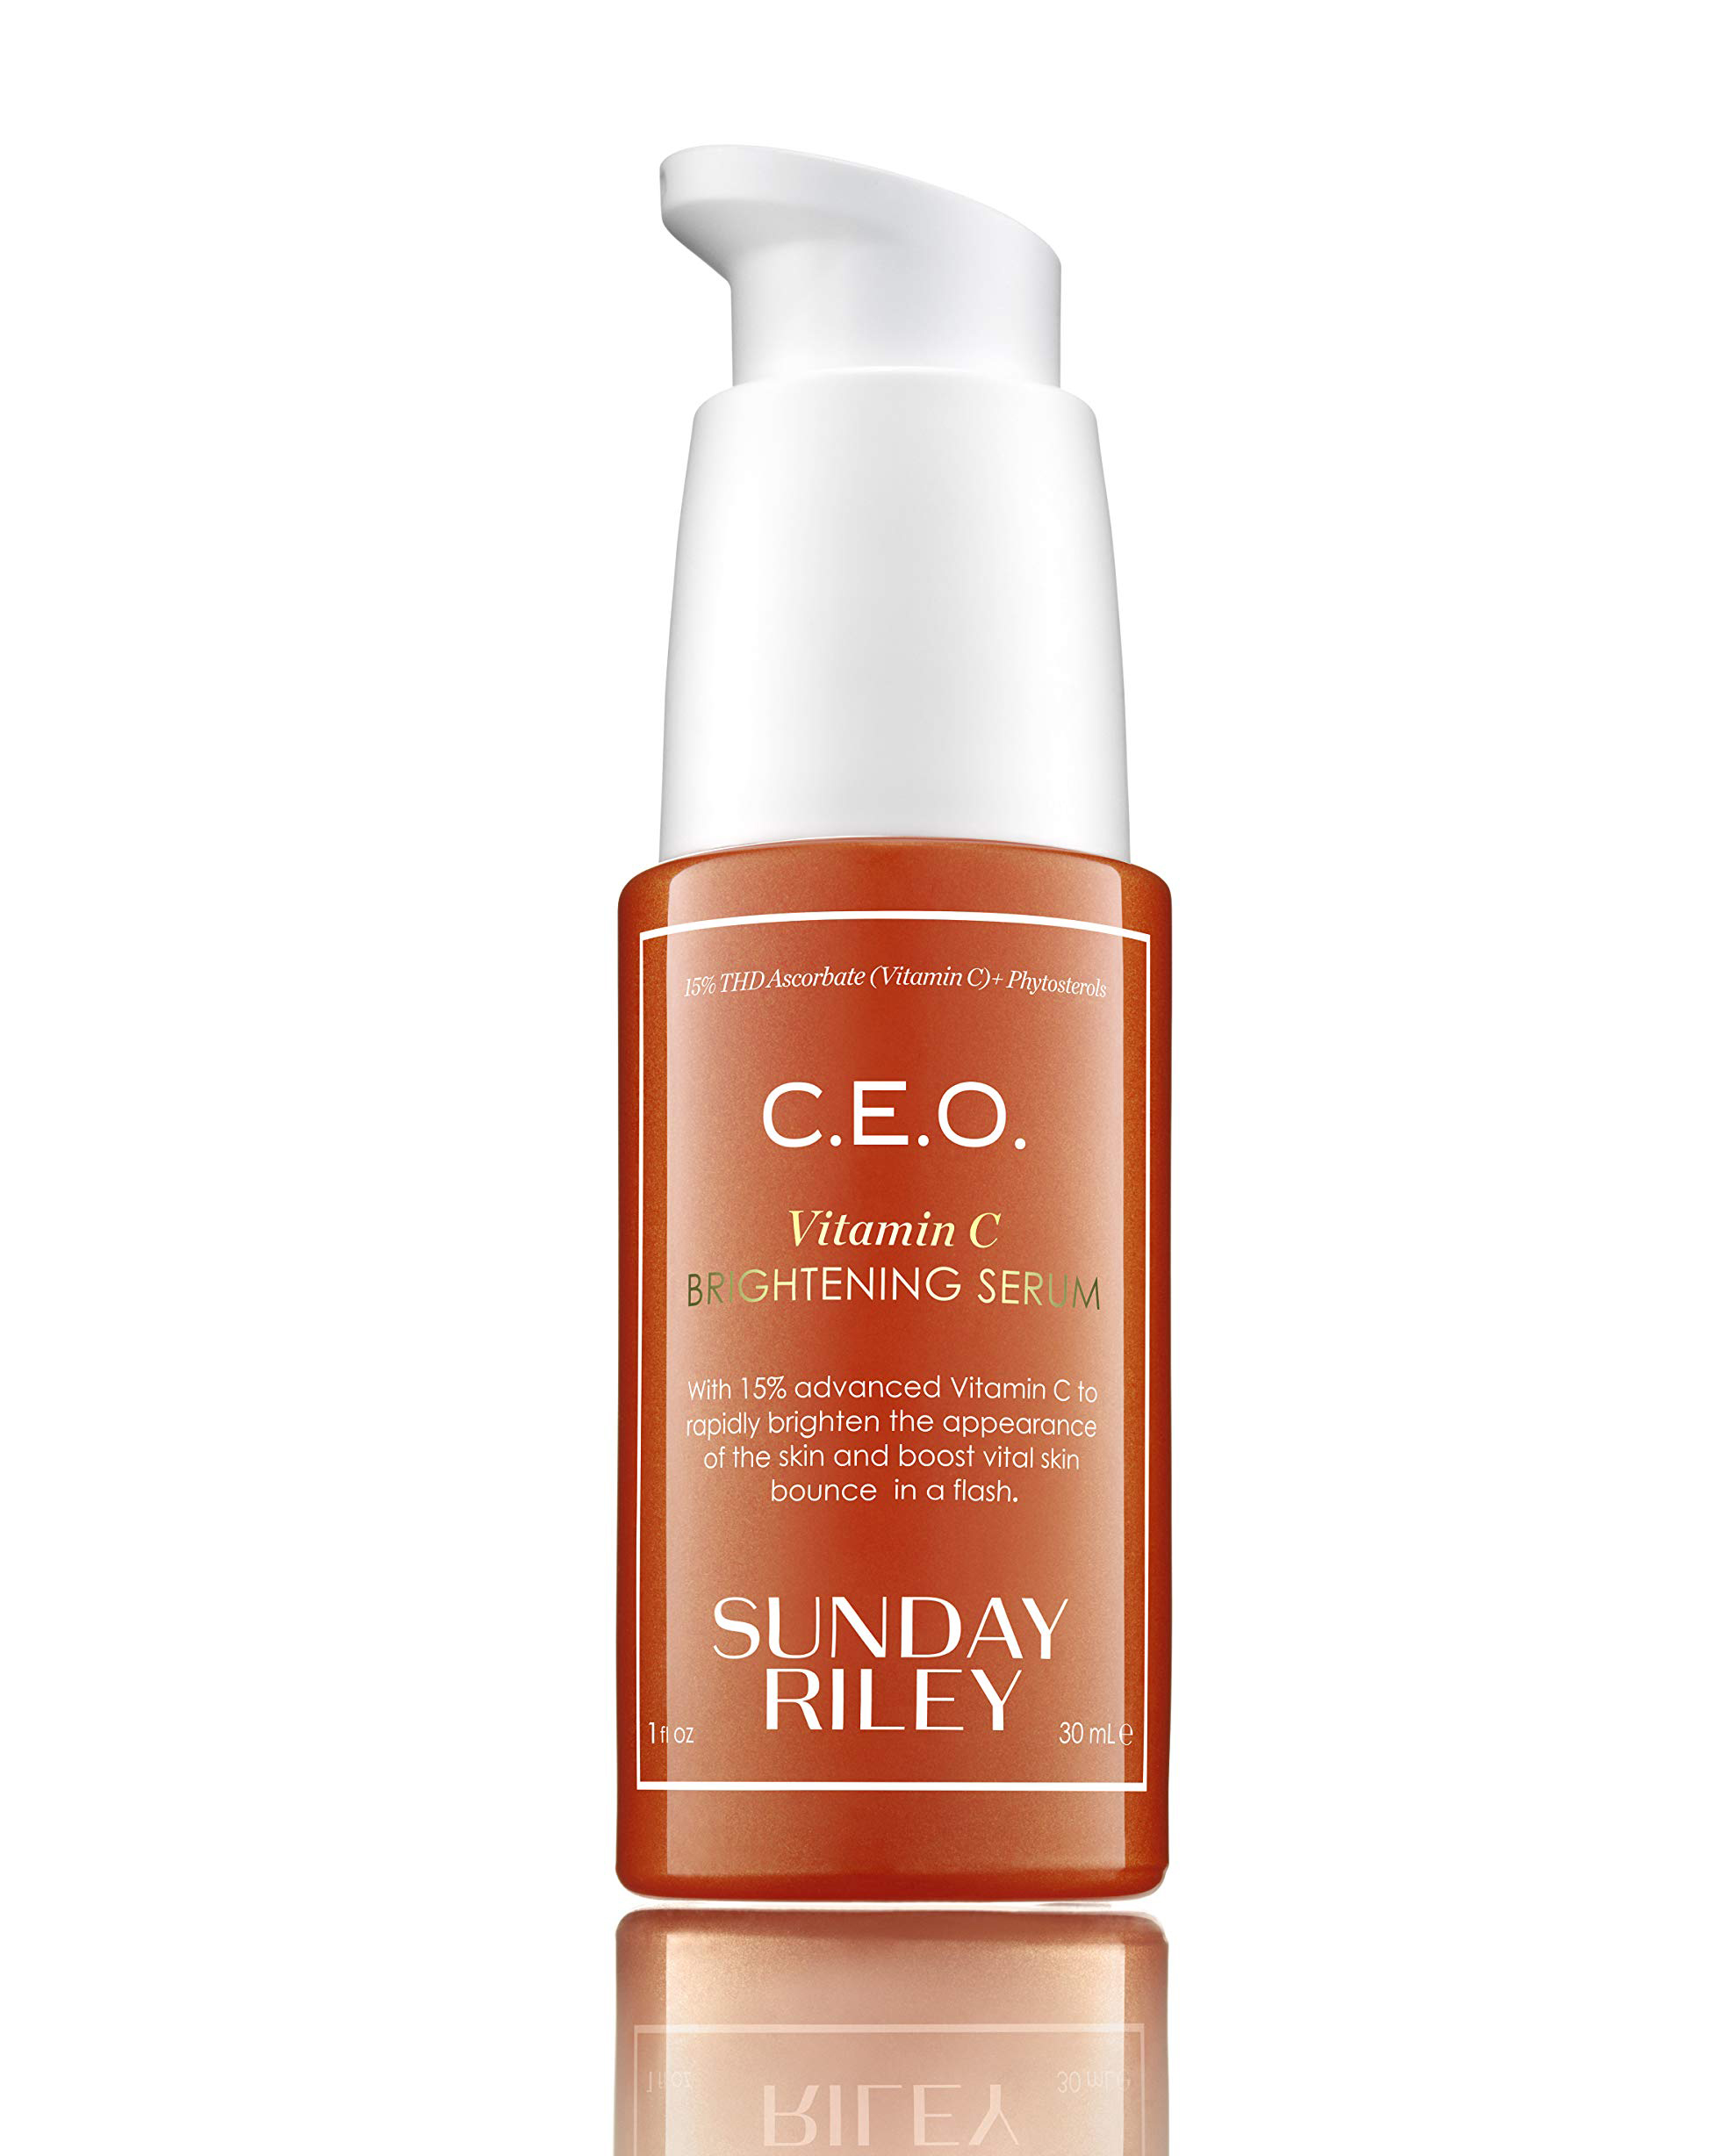 Sunday Riley C.E.O. Vitamin C Brightening Serum